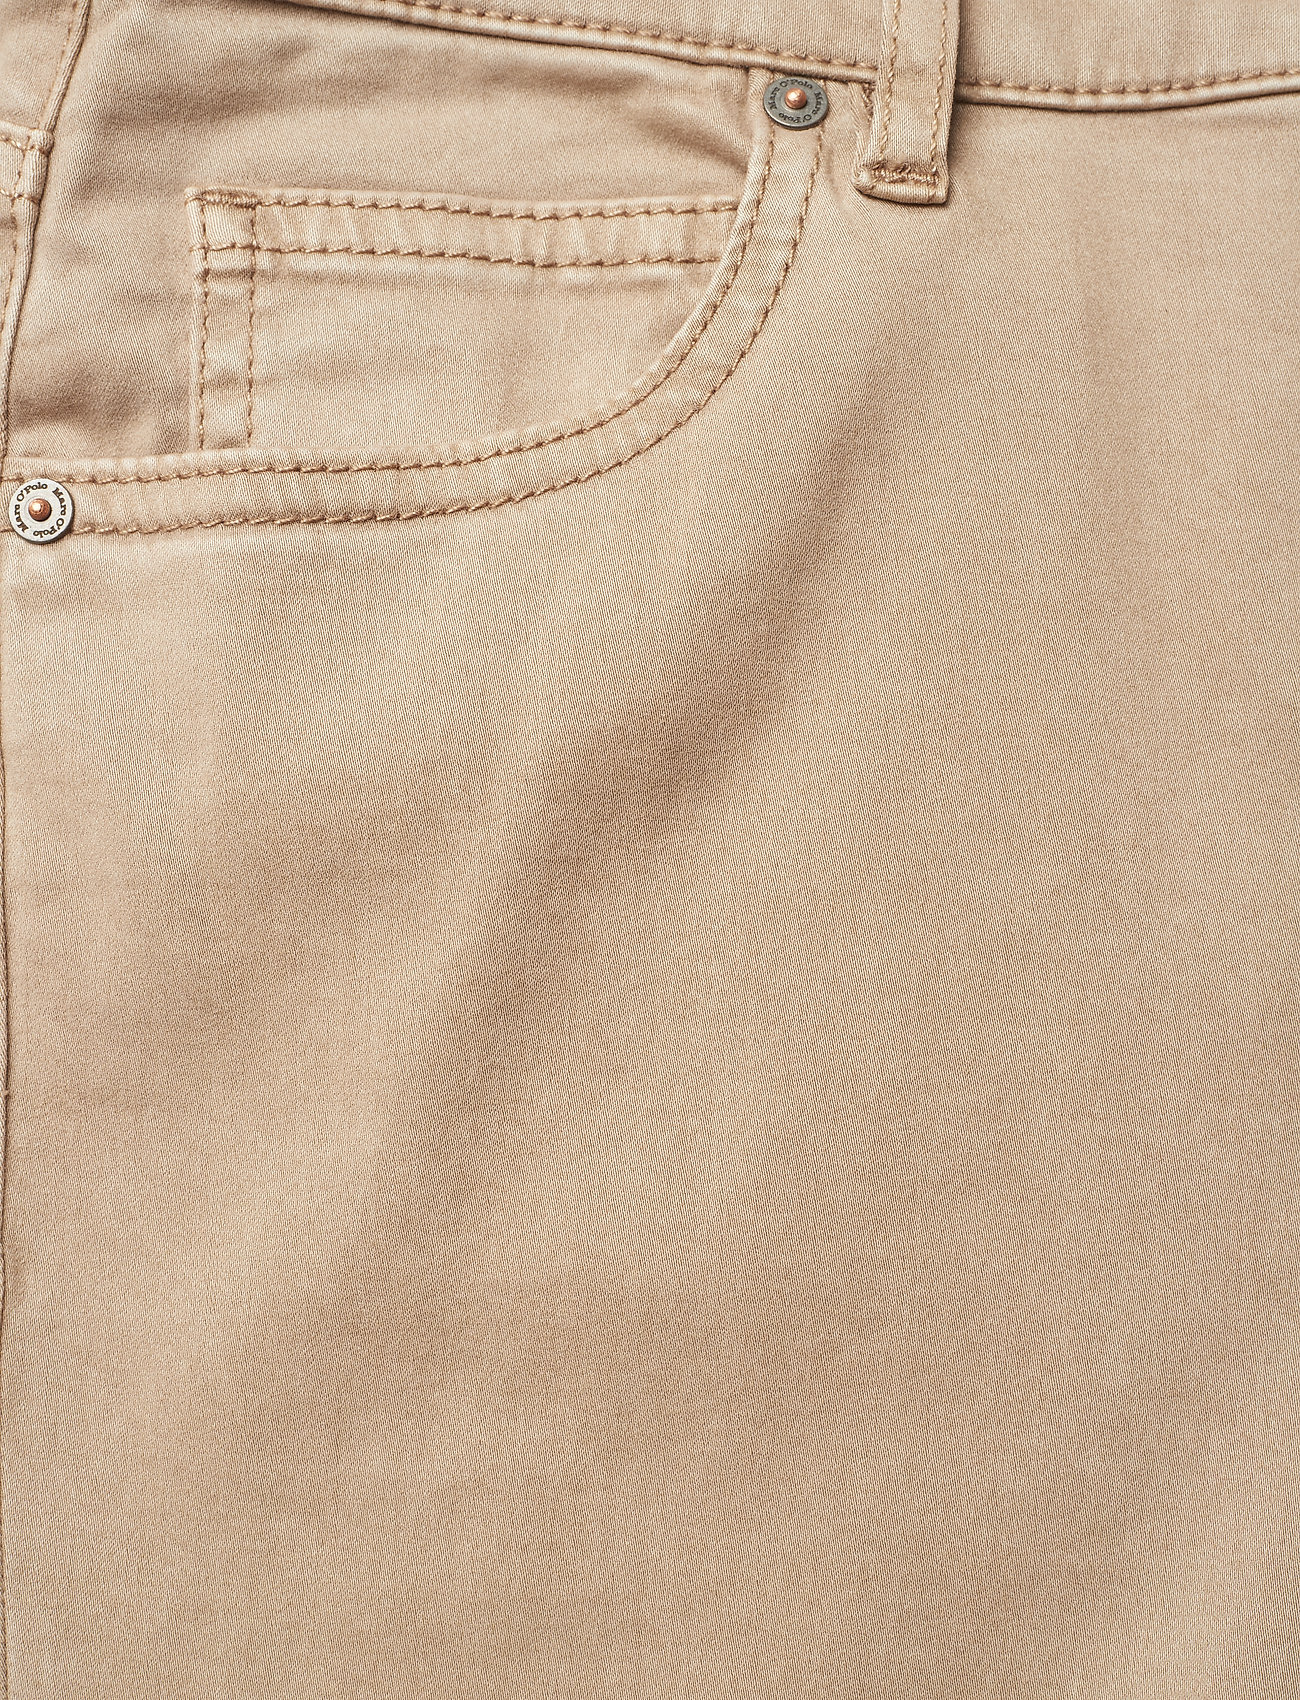 Jeans (Norse Sand) (1154.30 kr) - Marc O'Polo